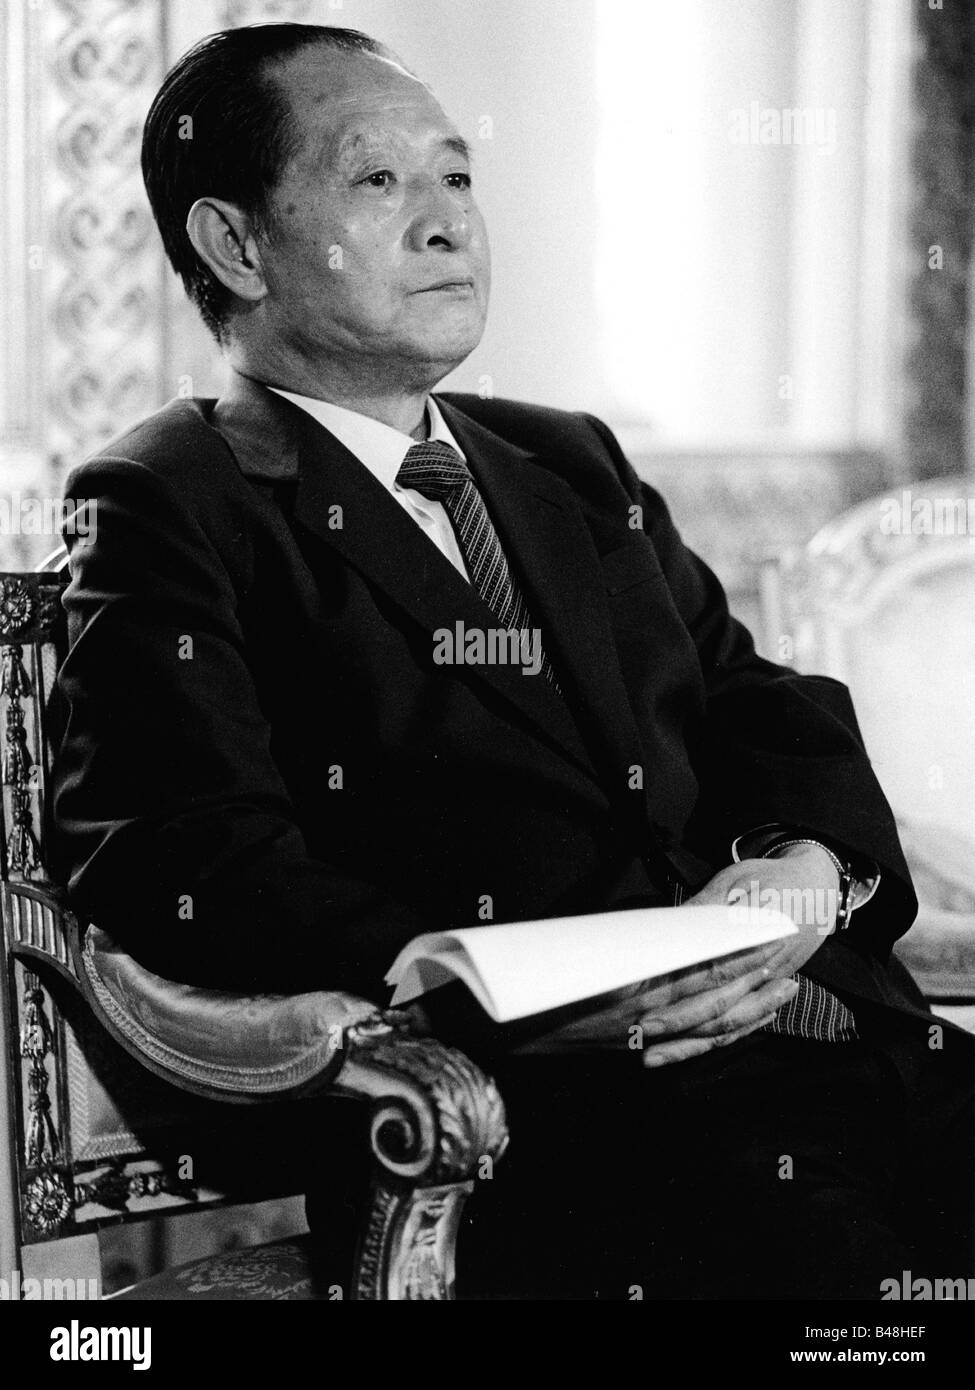 Hu Yaobang, 20.11.1915 - 15.4.1989, Chinese poltitician, 1980 - 1987 Premier of the State Council, half length, - Stock Image